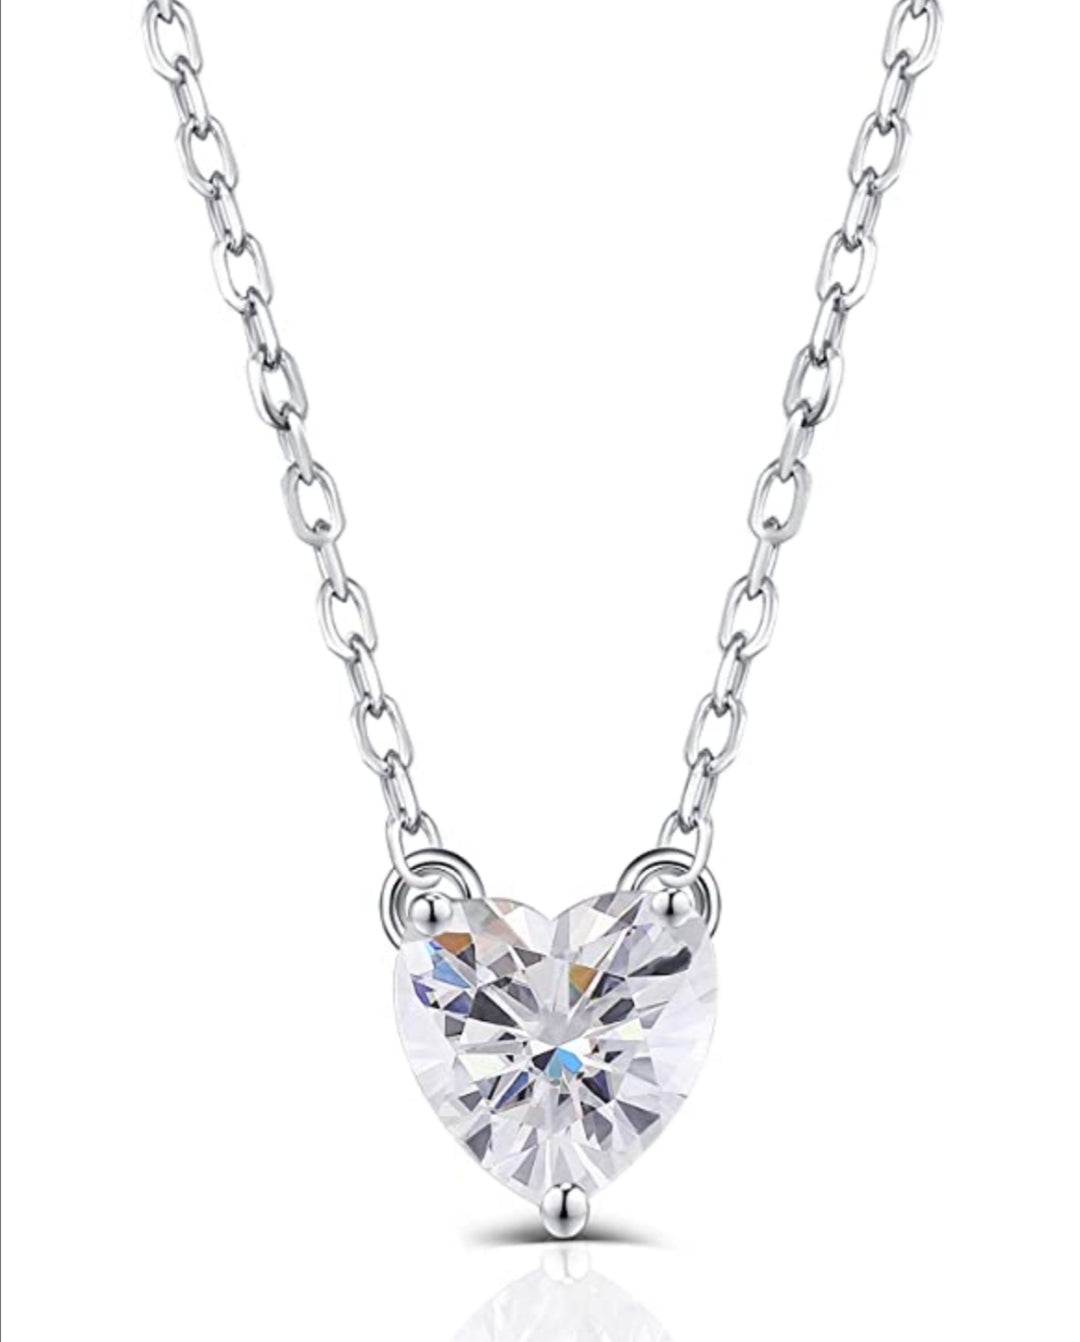 Sterling Silver 1ct 6.5mm G-H-I Color Heart Shape Cut Moissanite Pendant Necklace for Women